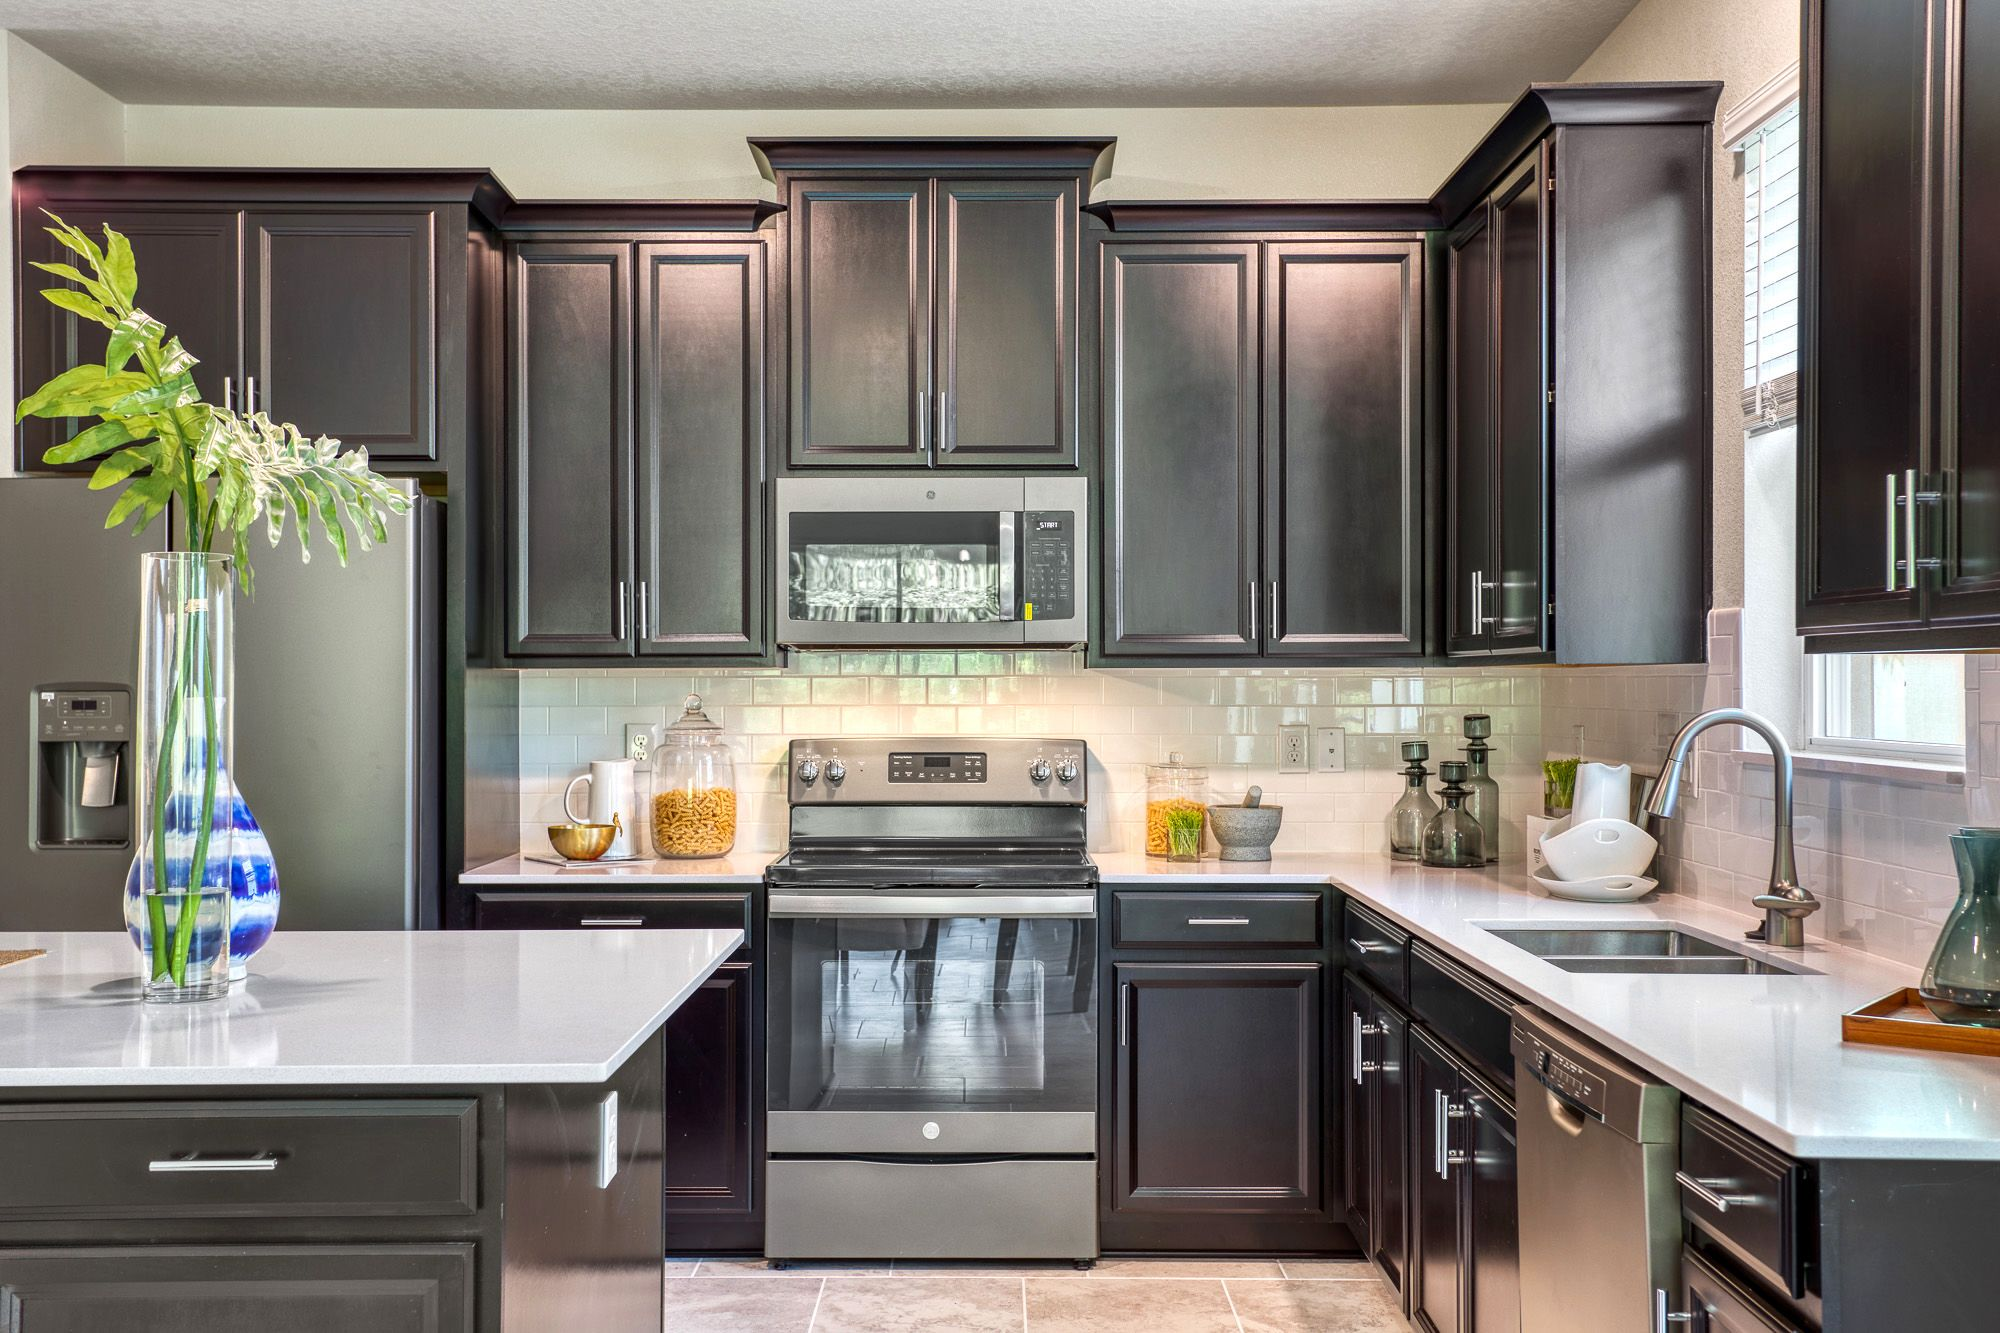 Beautiful Kitchen With Dark Cabinets In 2020 Beautiful Kitchens Dark Kitchen Cabinets New Homes For Sale